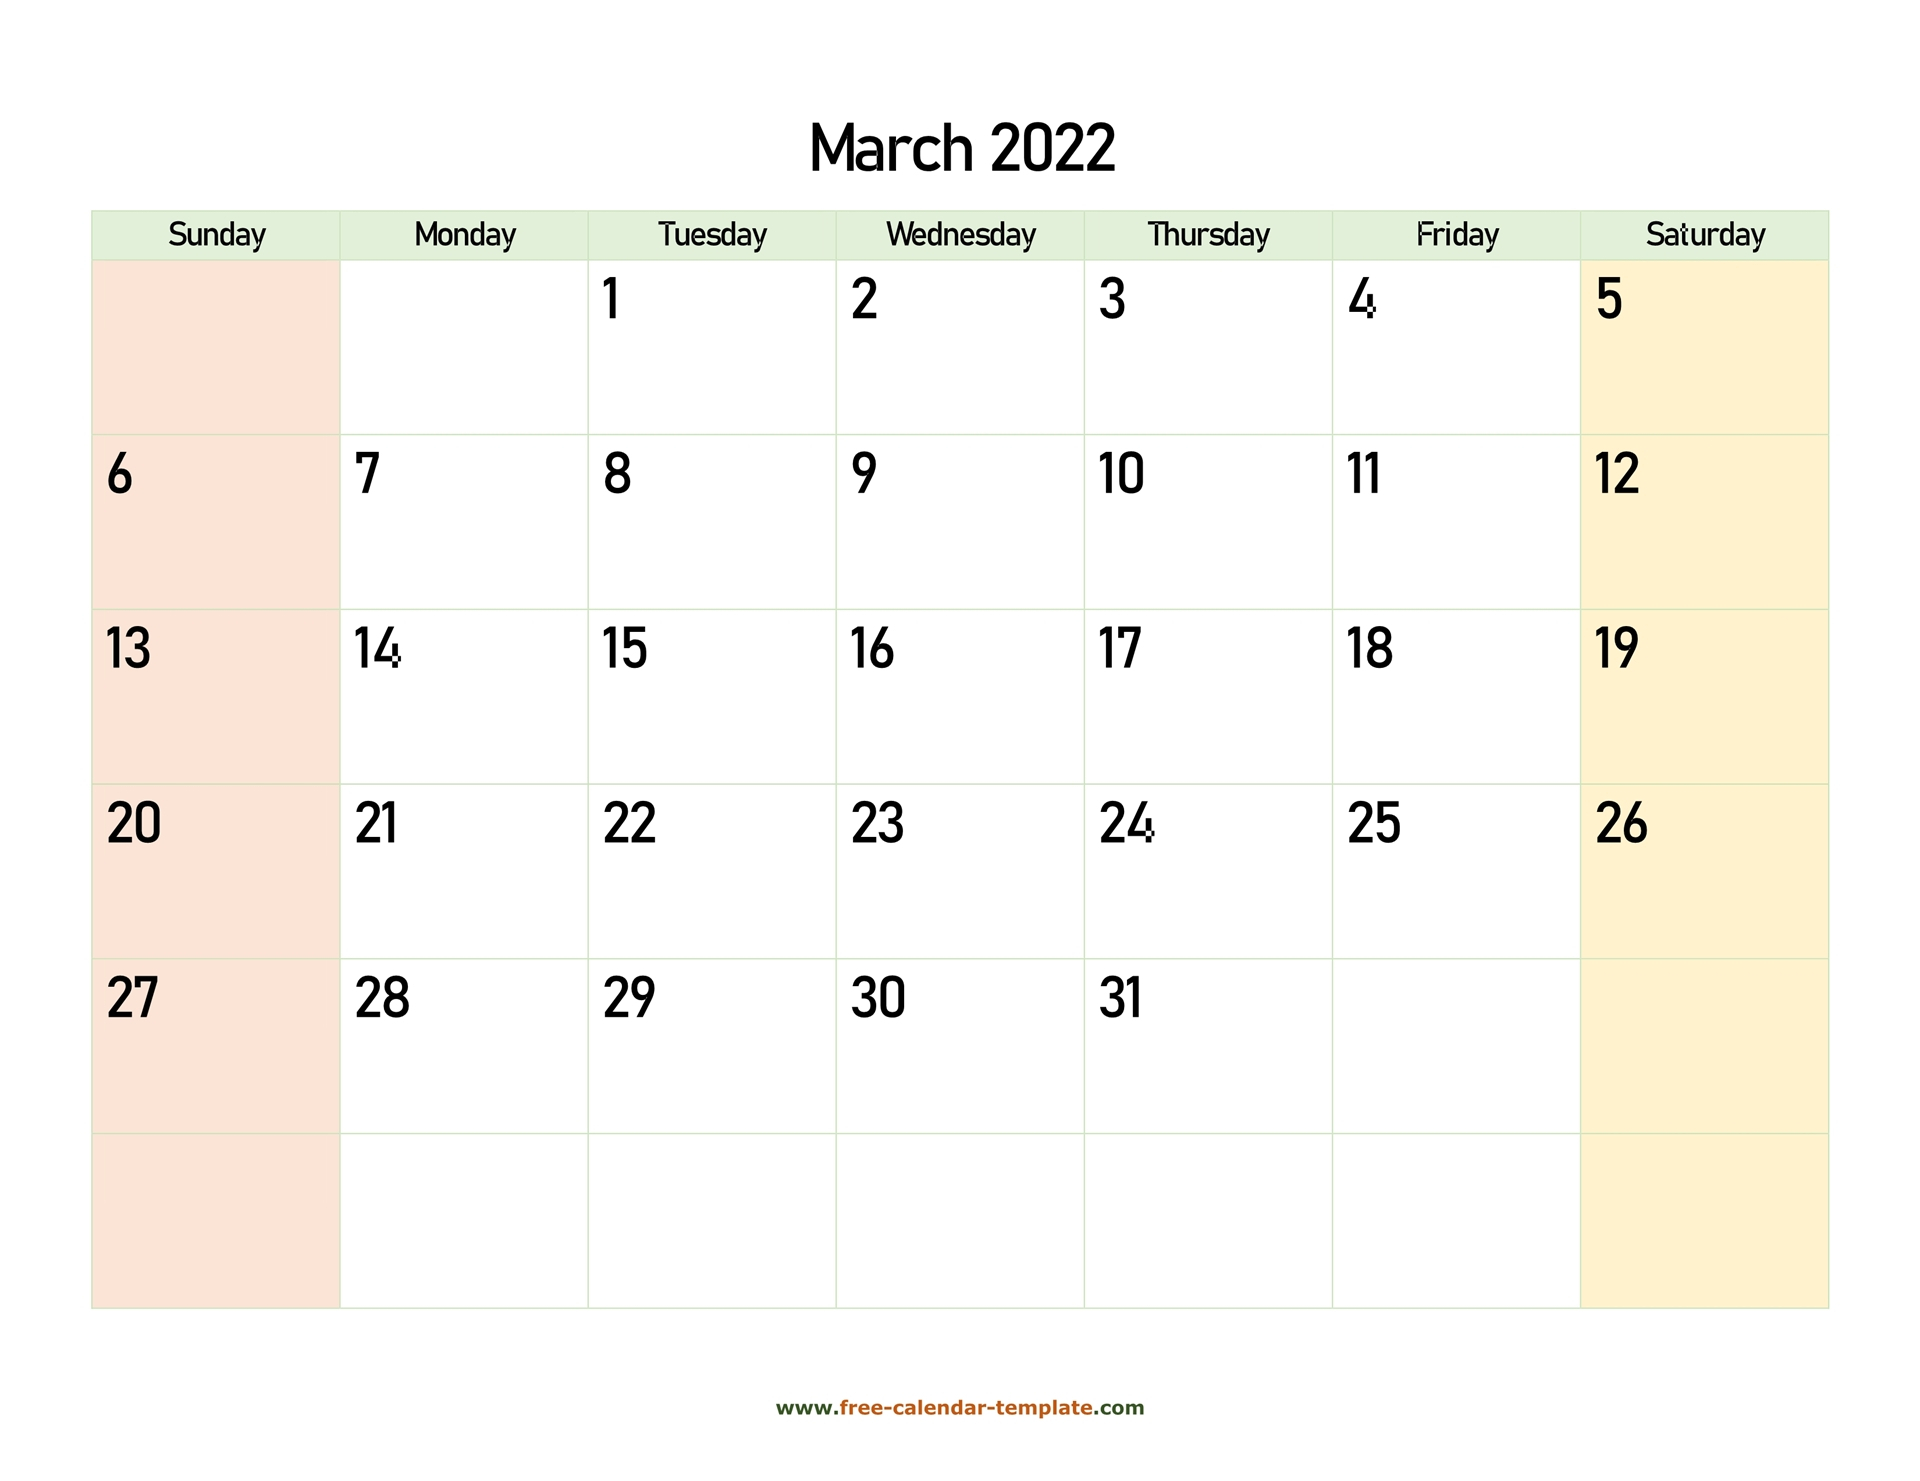 March 2022 Calendar Printable With Coloring On Weekend for 2022 Day To Day Calendars For Men